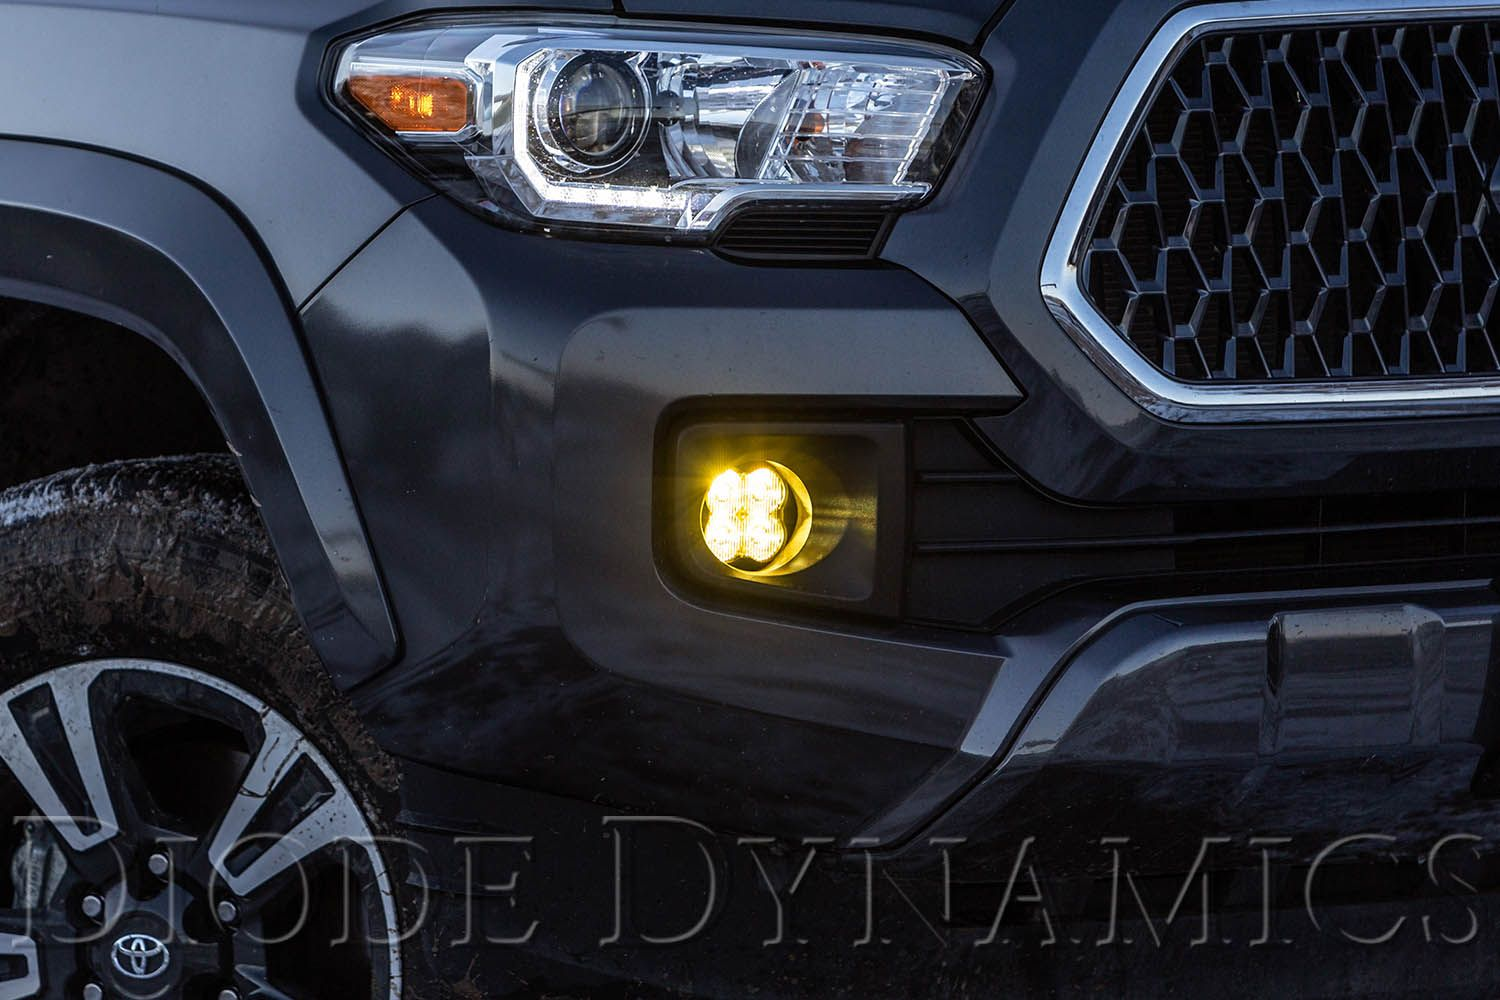 SS3 LED Fog Light Kit - Toyota Tacoma 3rd Gen 2016-2020 - 4x4 Runners